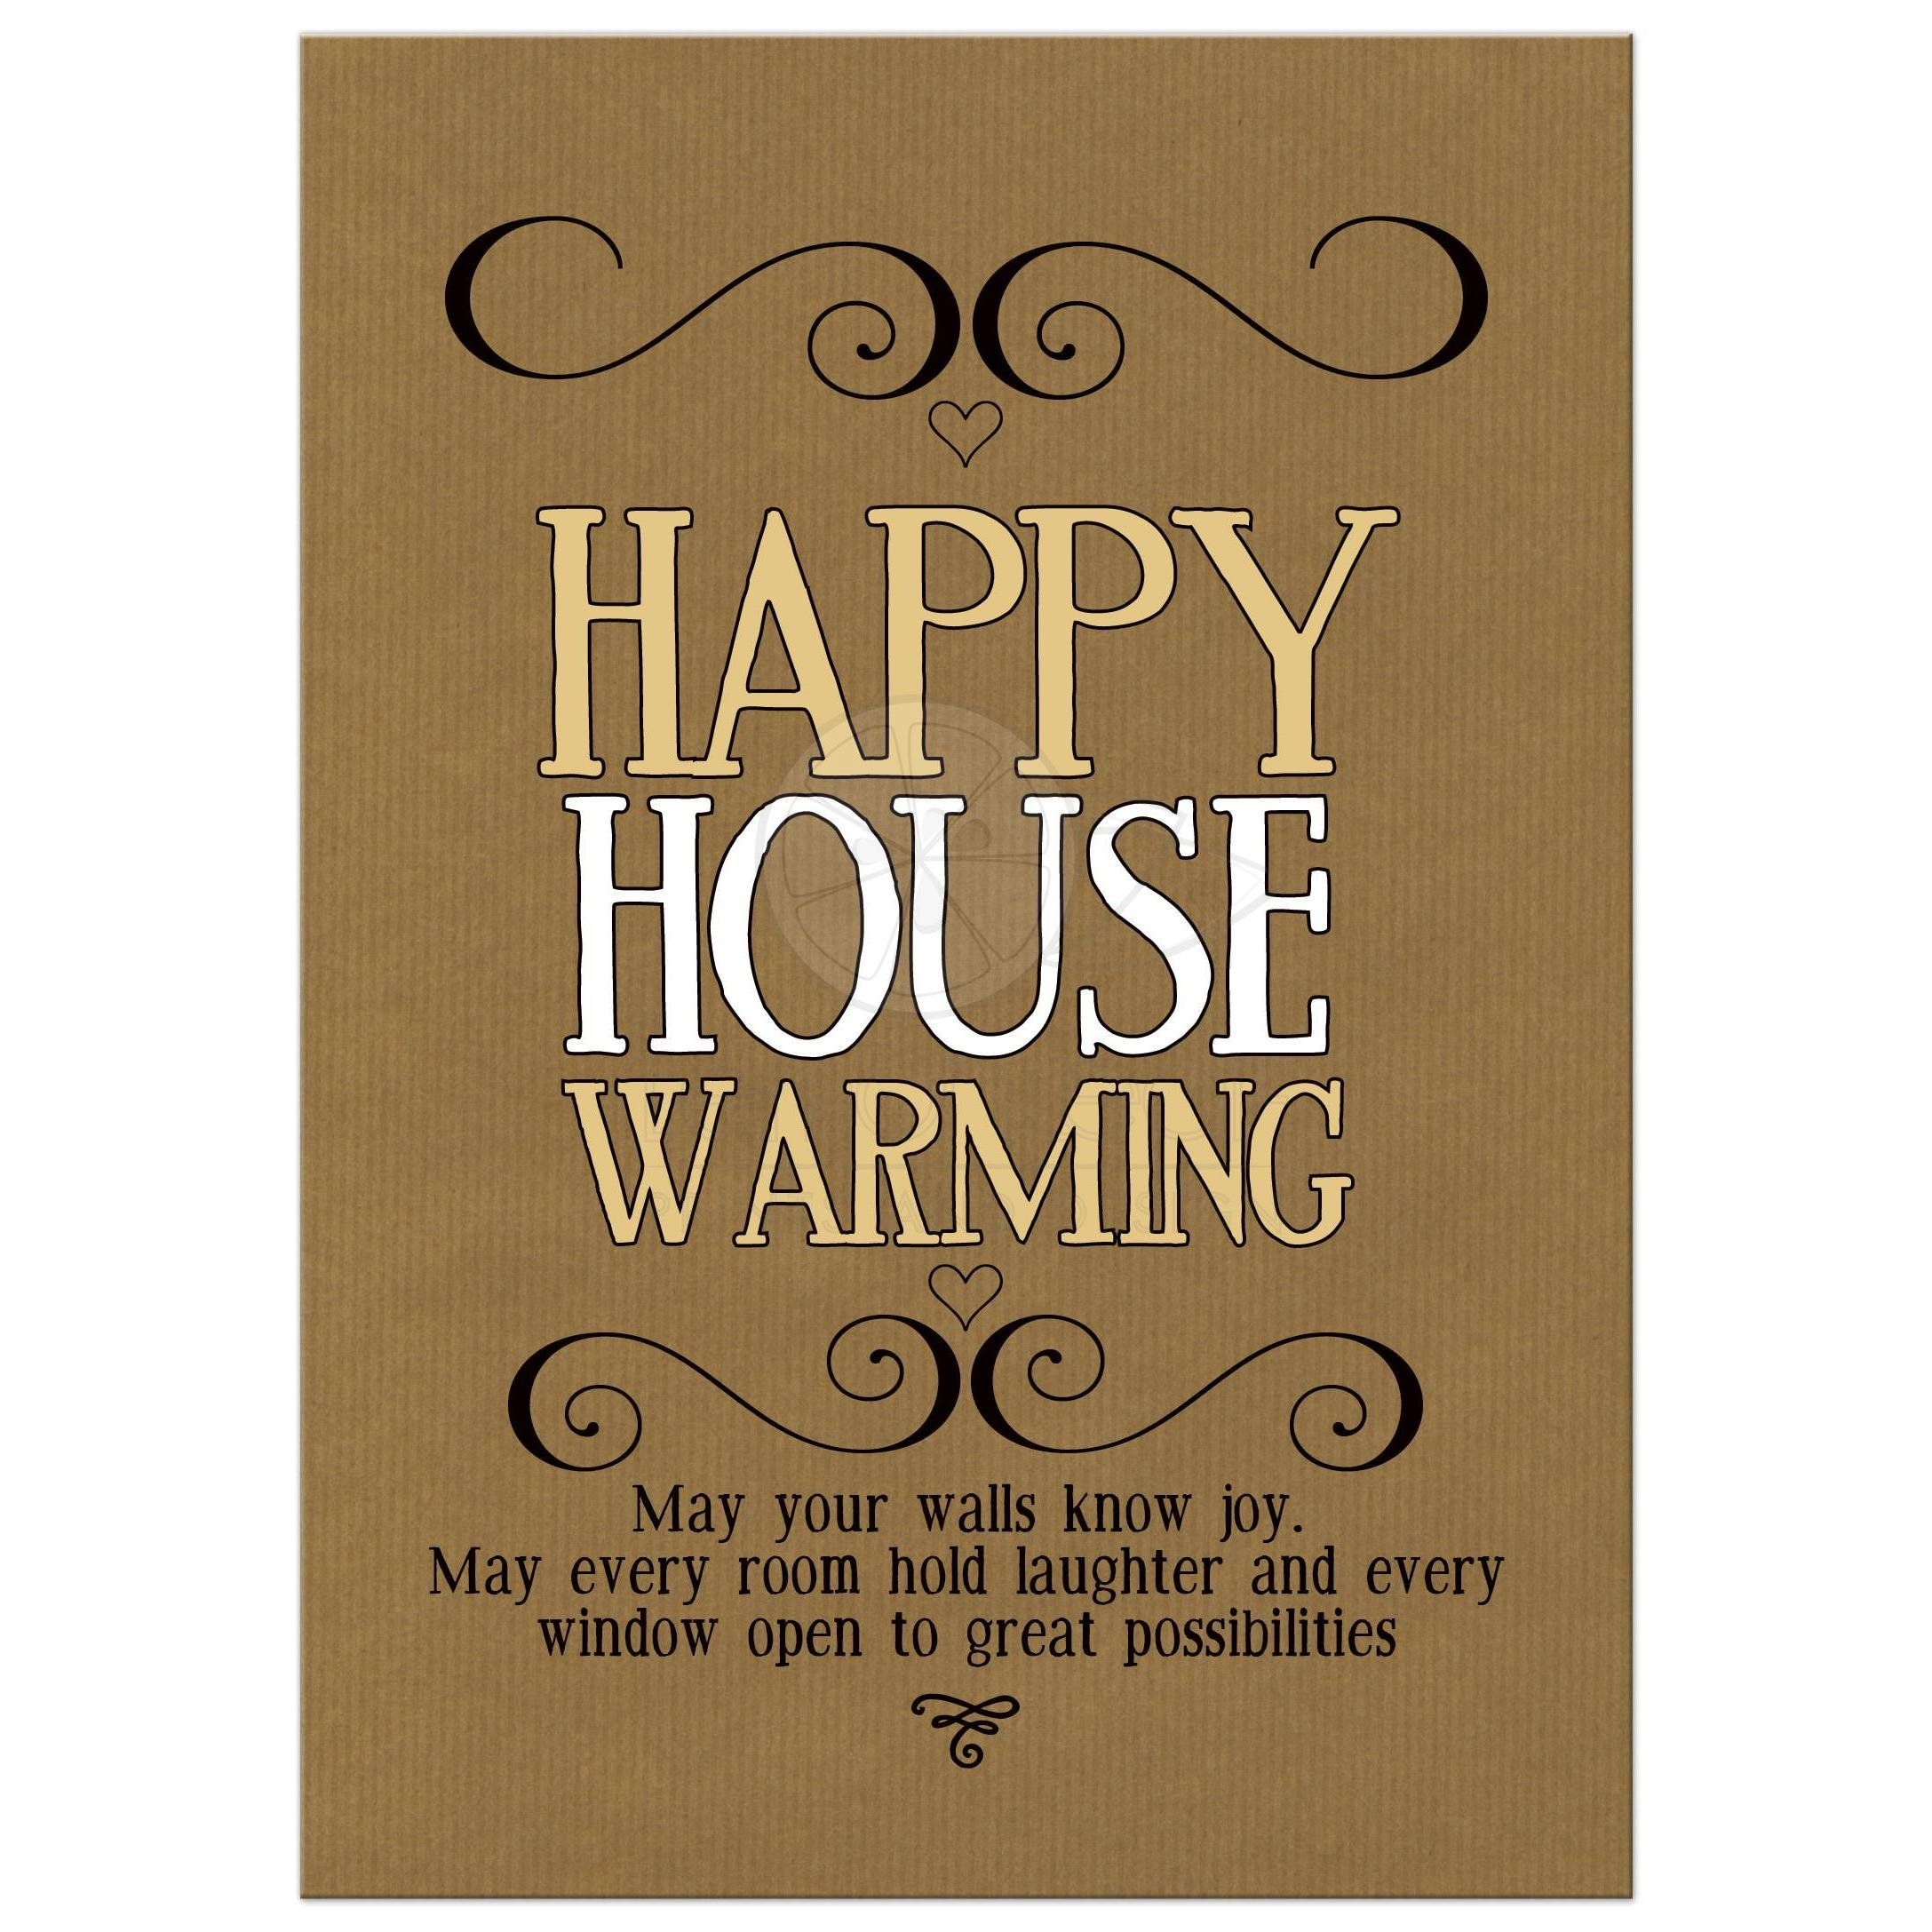 Happy Housewarming Wishes Card Welcome Home Quotes New Home Quotes Housewarming Wishes